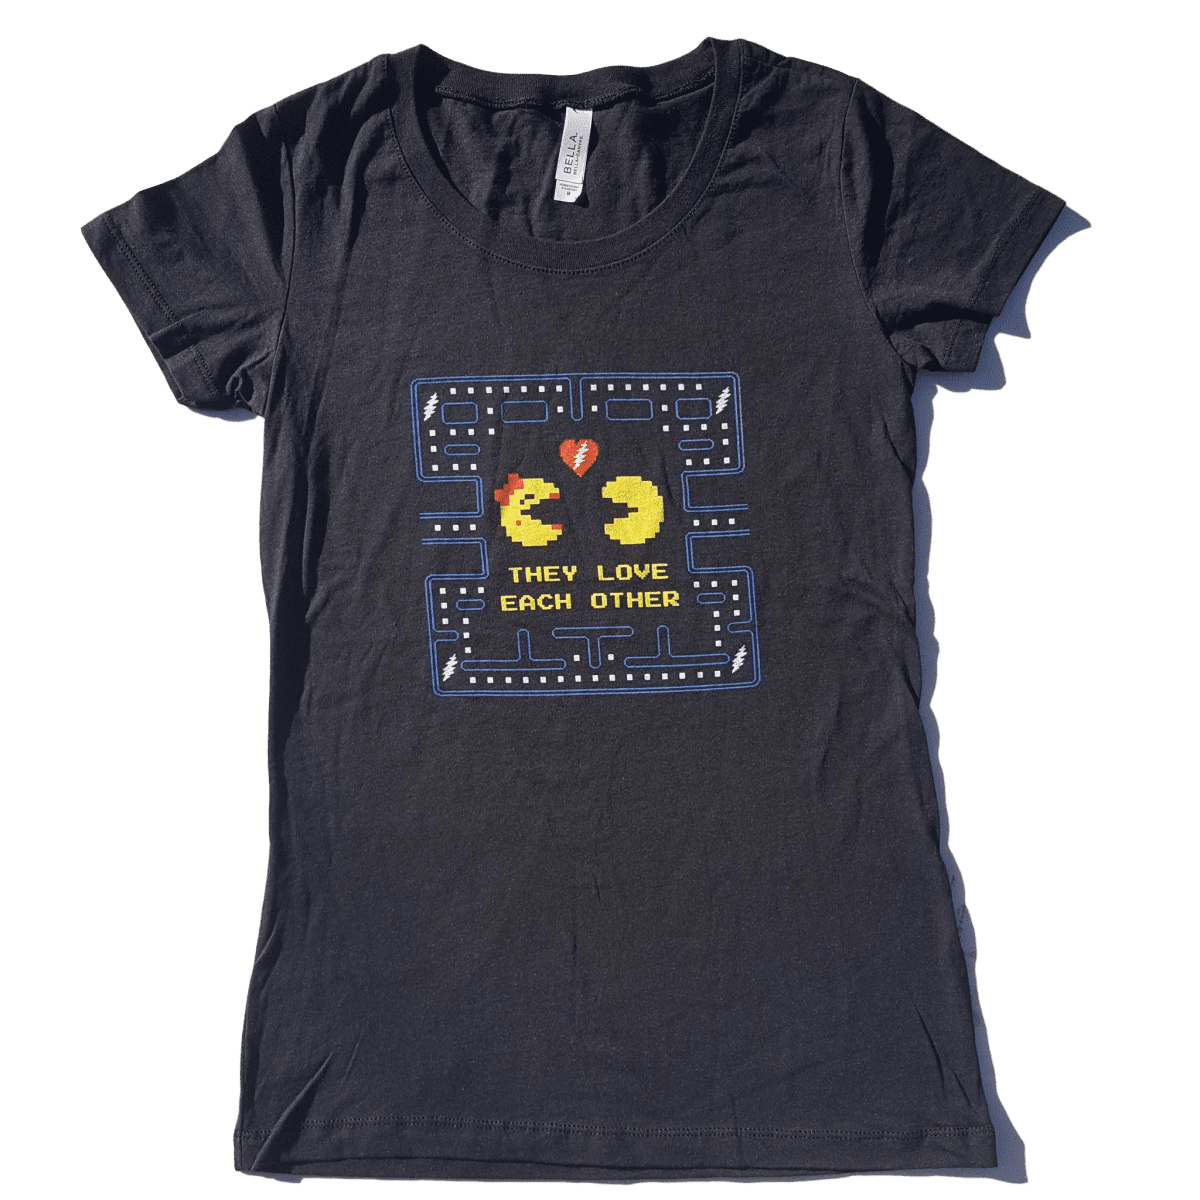 They Love Each Other: LADIES They Love Each Other TLEO Pacman Lyric Tee Shirt